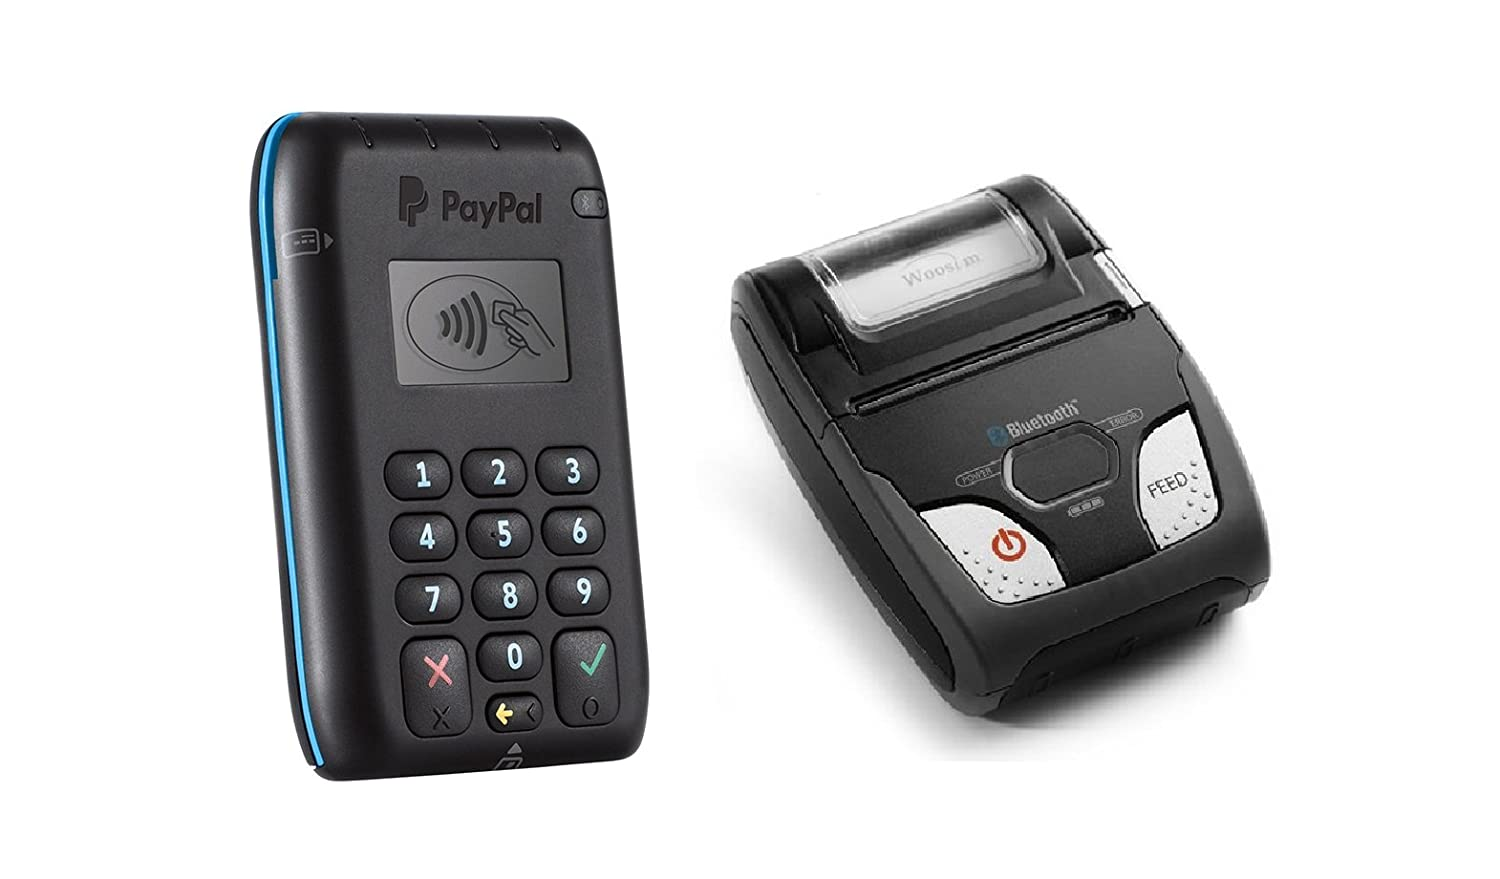 PayPal Chip Card Reader (EMV)  Chip Card, Contactless, or Apple Pay & Woosim wsp-r241 - Paypal Here Compatible Receipt Printer - From Pac Supplies USA ...